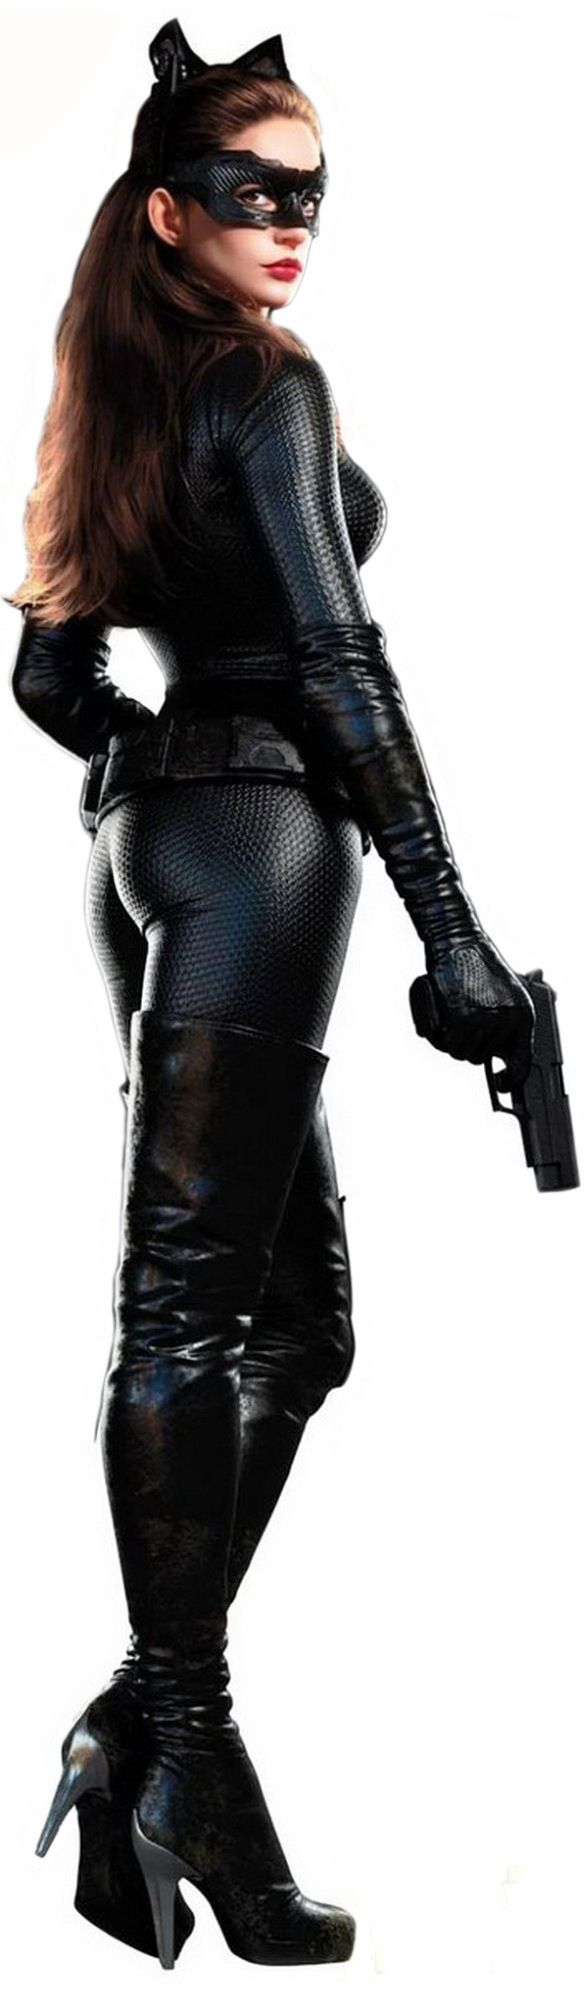 Anne Hathaway as Catwoman. Possible halloween costume.